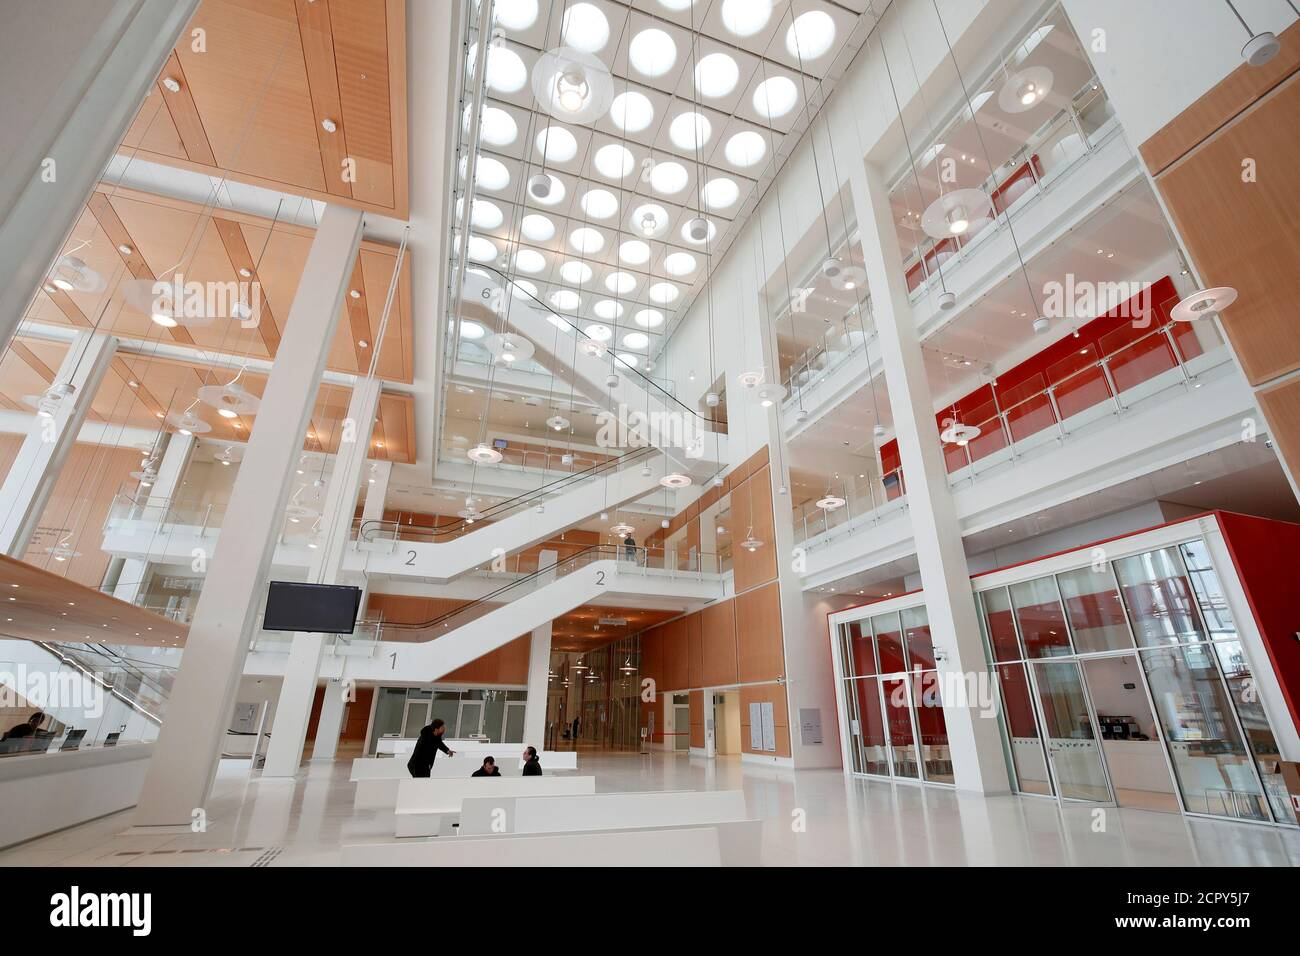 Inside view of the Paris new courthouse, designed by Italian architect Renzo Piano during a press visit in Paris, France, April 13, 2018. REUTERS/Benoit Tessier Stock Photo